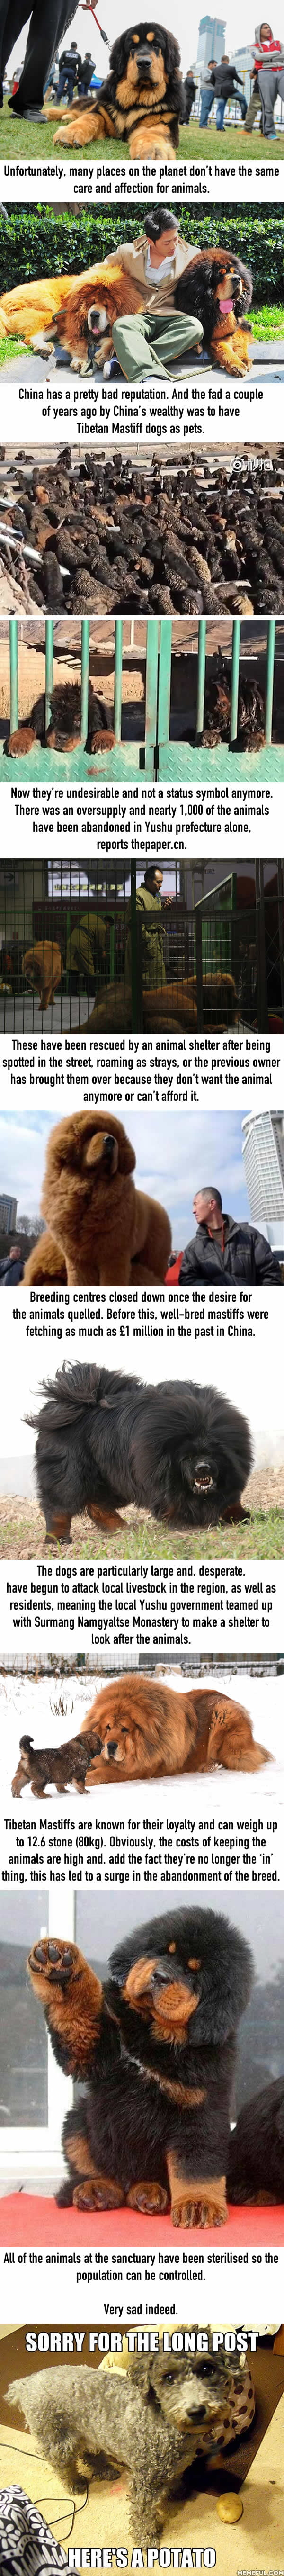 Tibetan Mastiffs Aren't Desirable In China Anymore And They're Being Abandoned